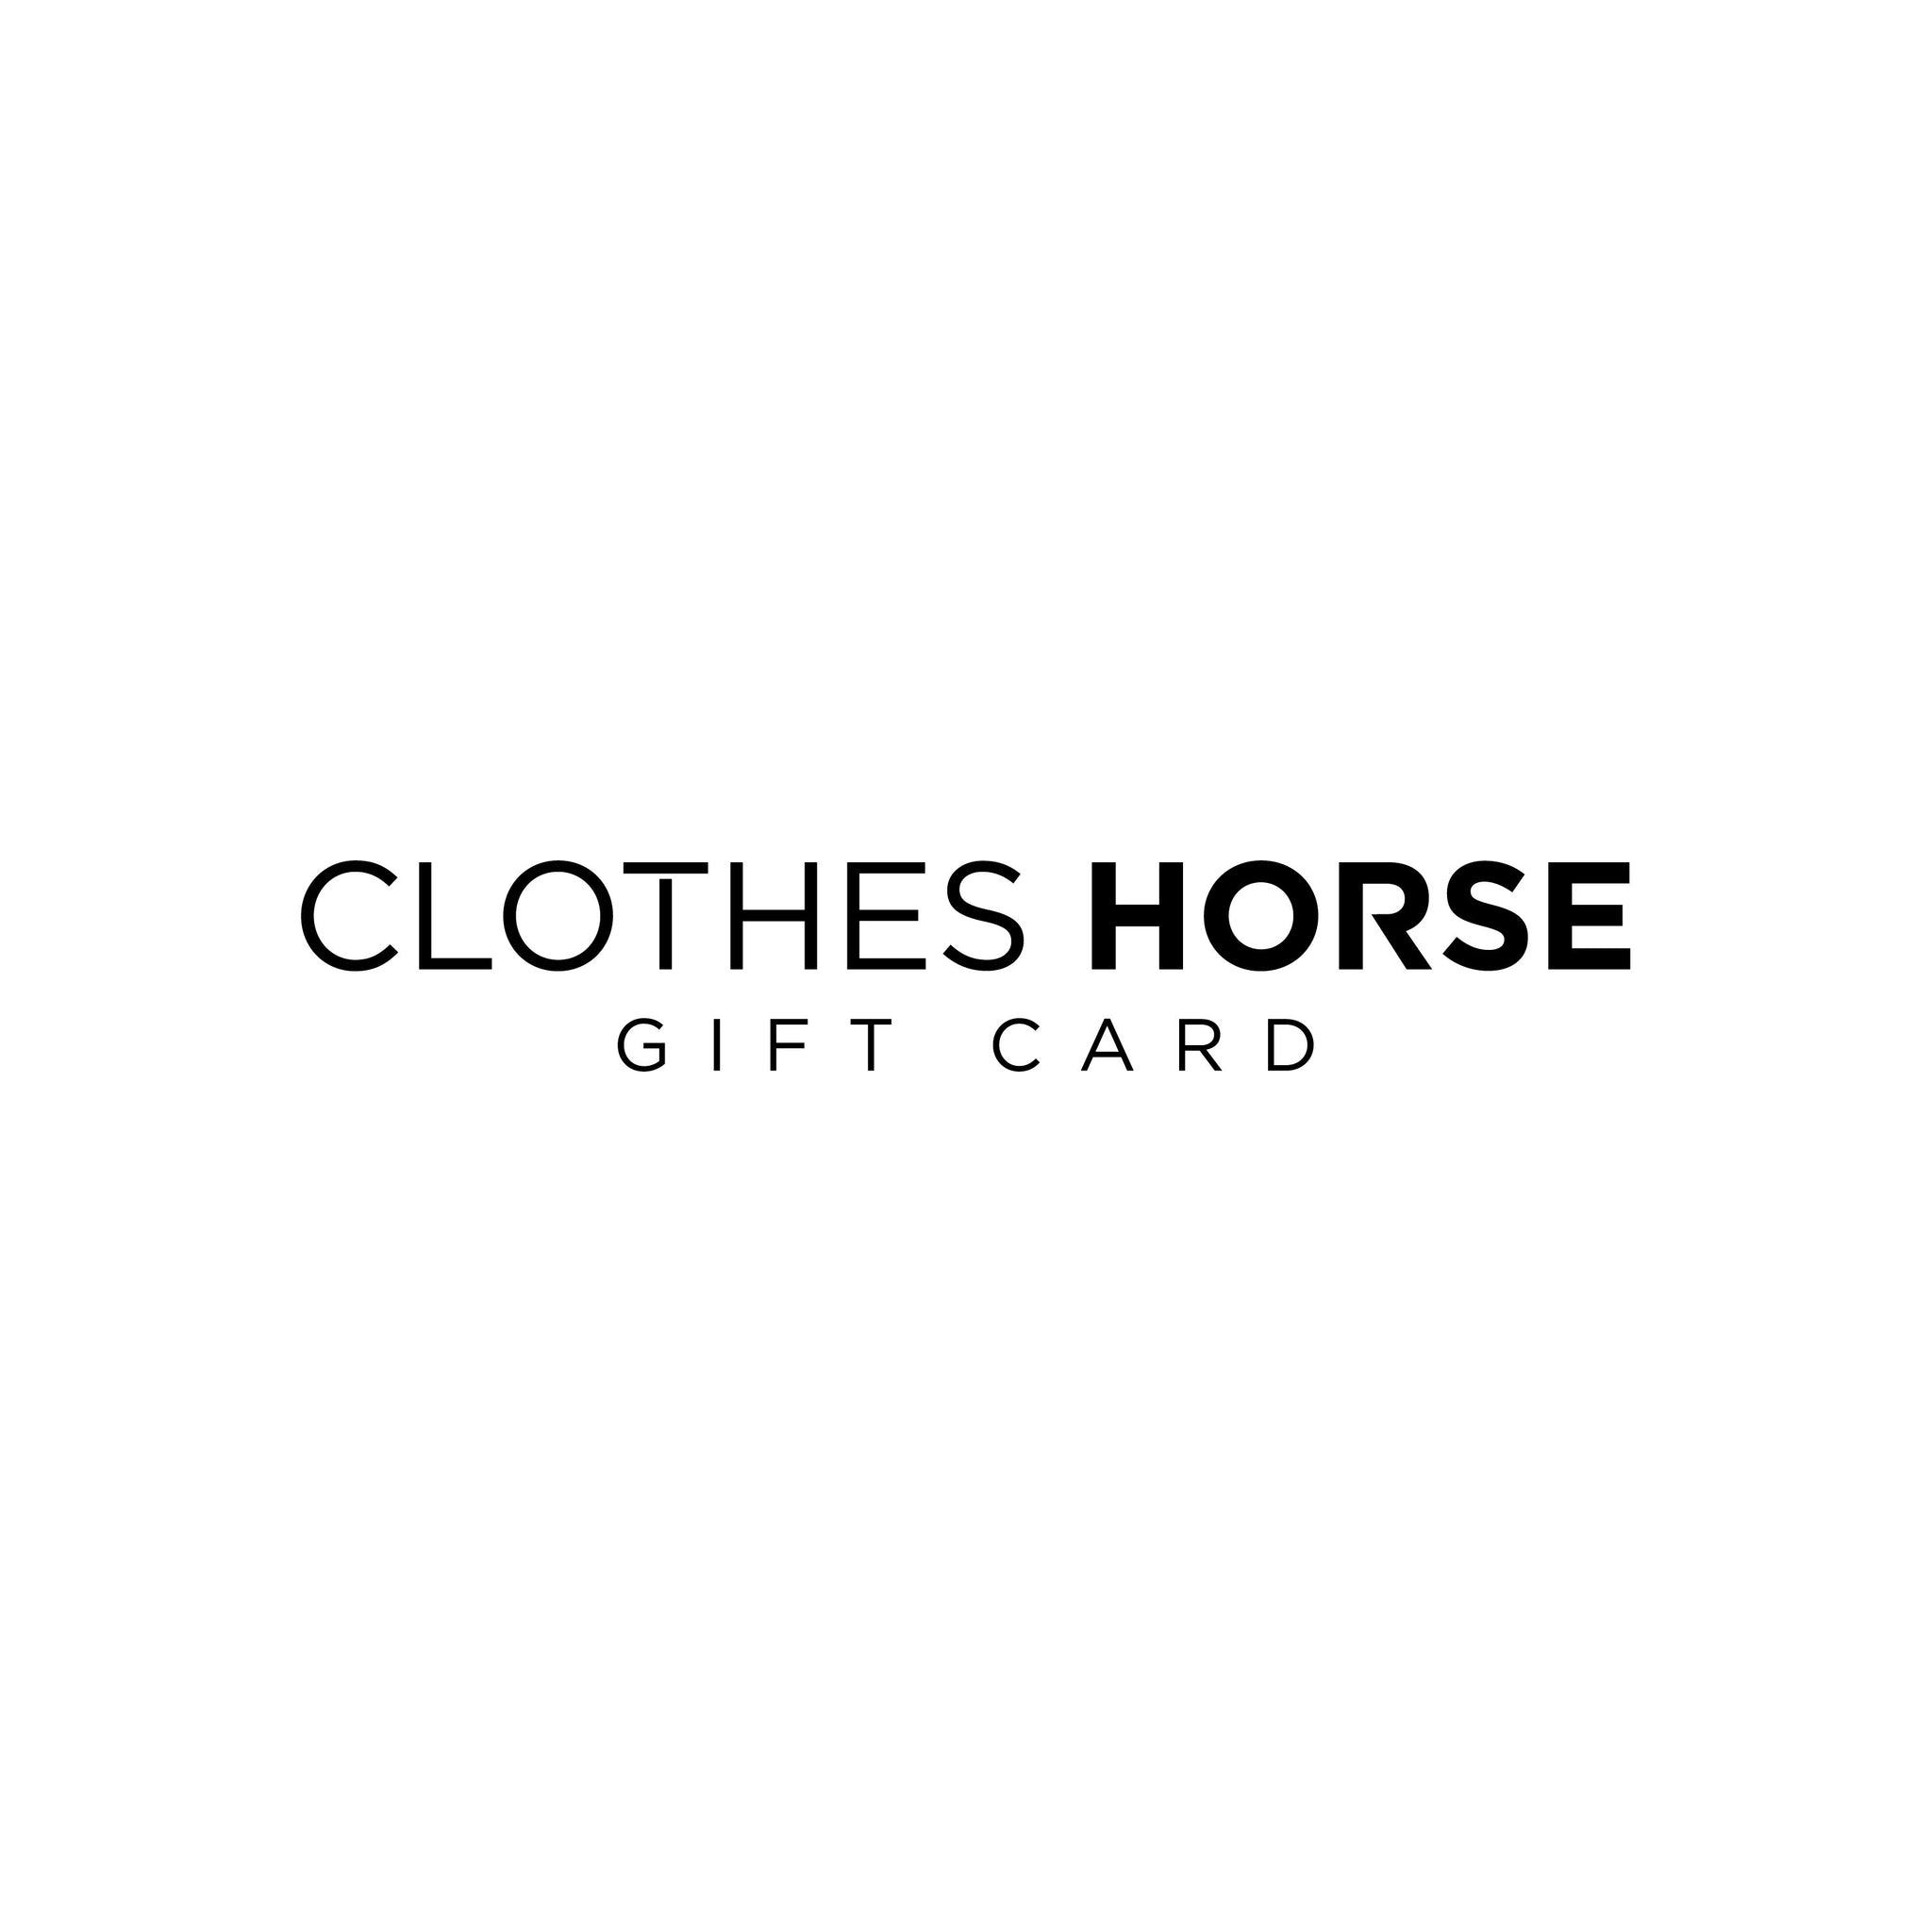 Clothes Horse Gift Card